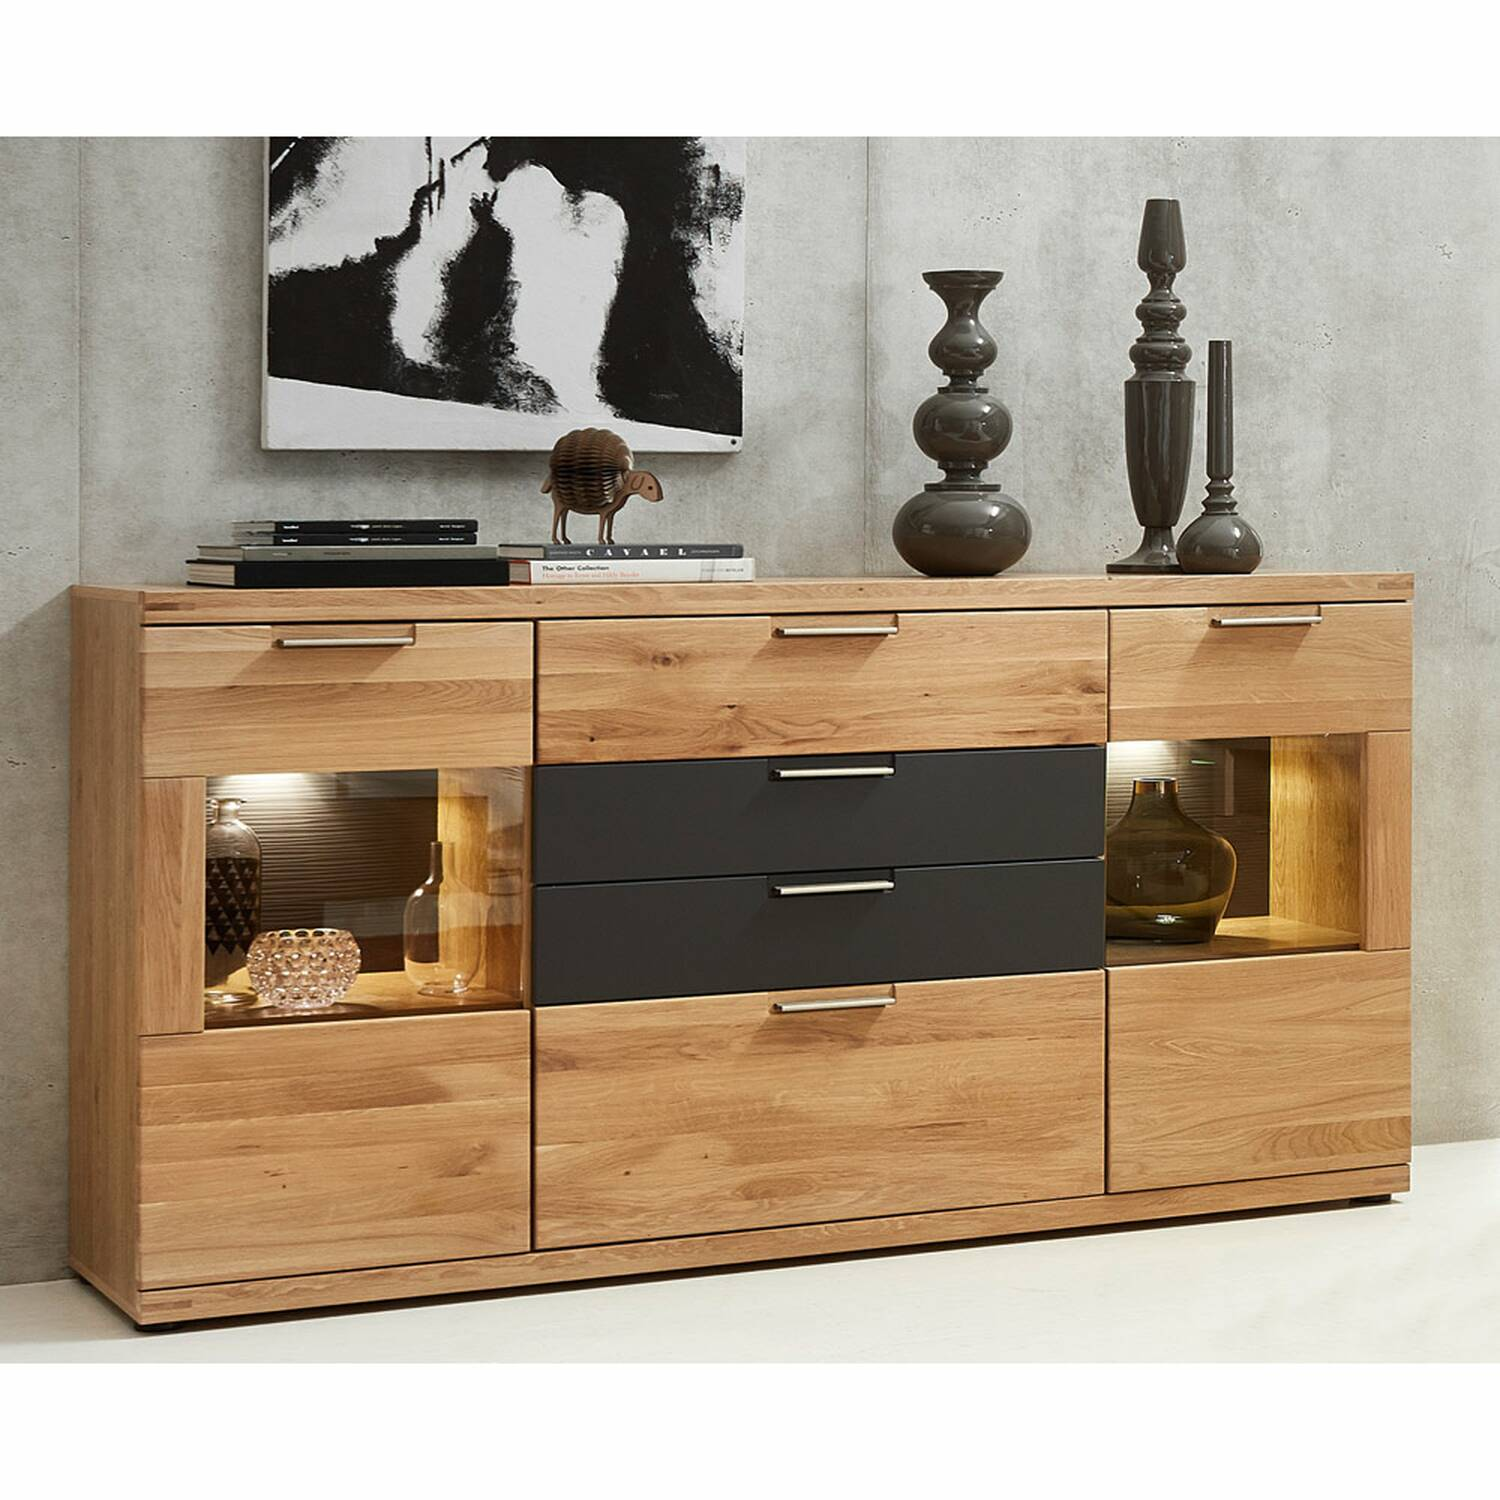 Sideboard inkl. LED-Beleuchtung BOZEN-36 Wildeiche Bianco Massivholz Fronten B/H/T 165x94x42cm